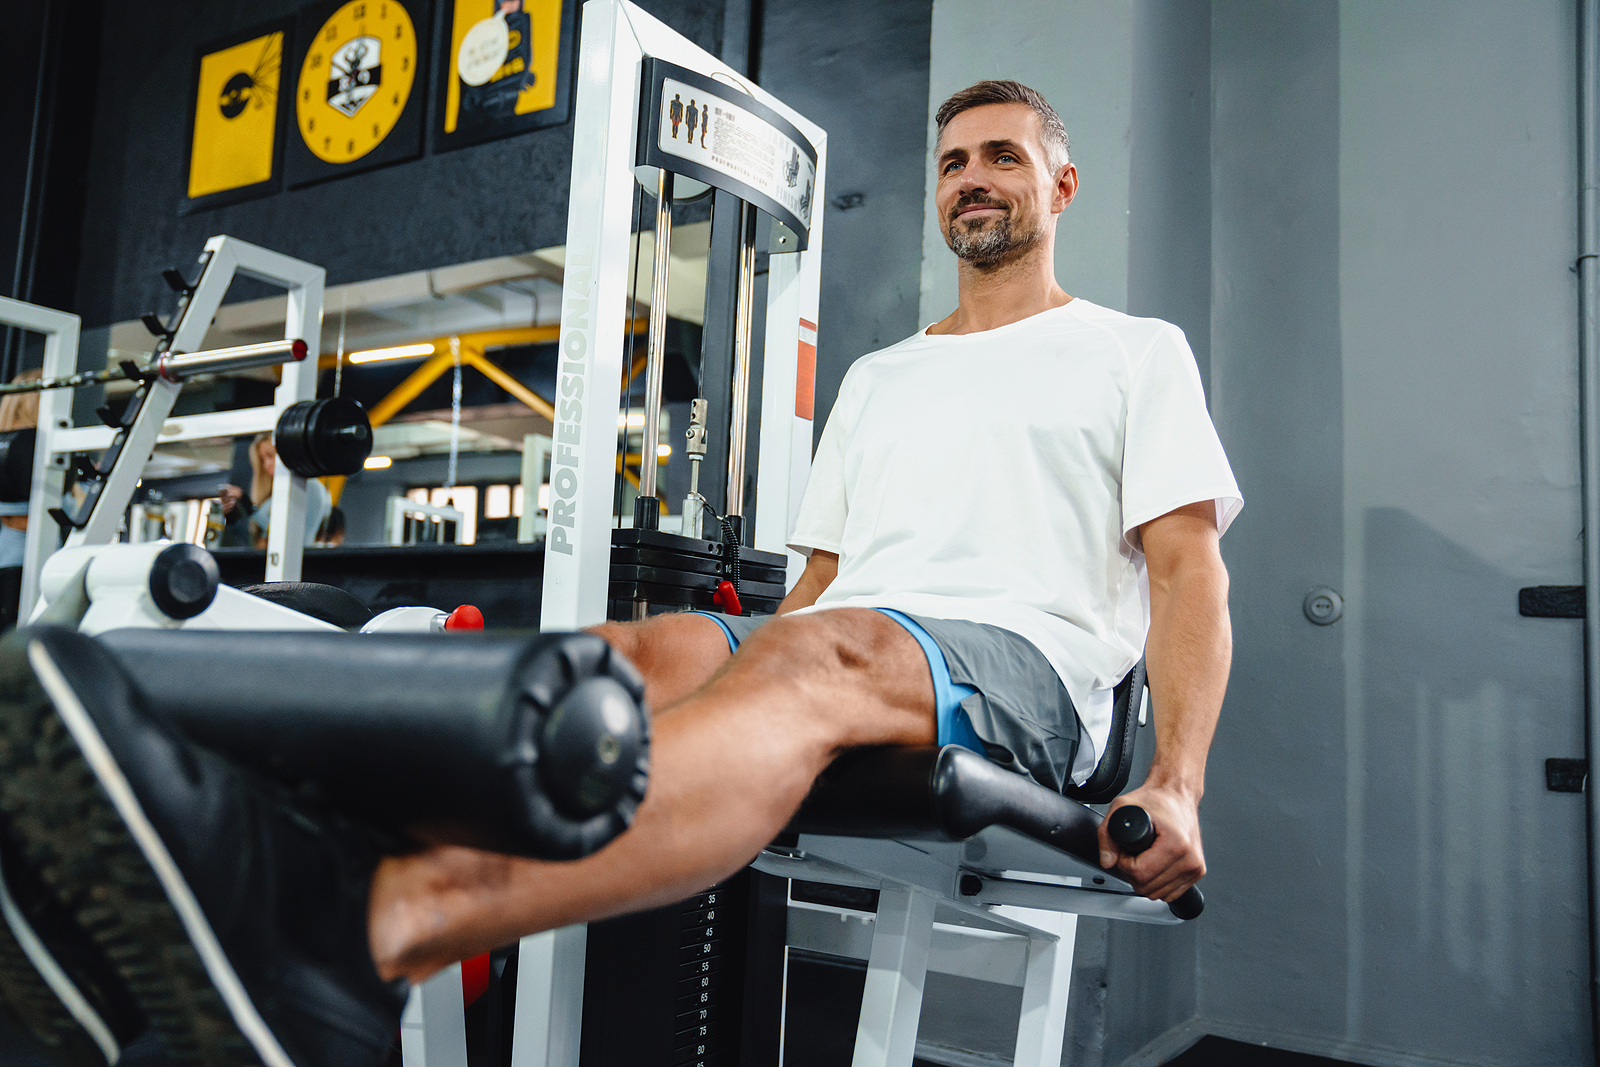 An image depicting a man use a machine at a gym to build muscle mass.